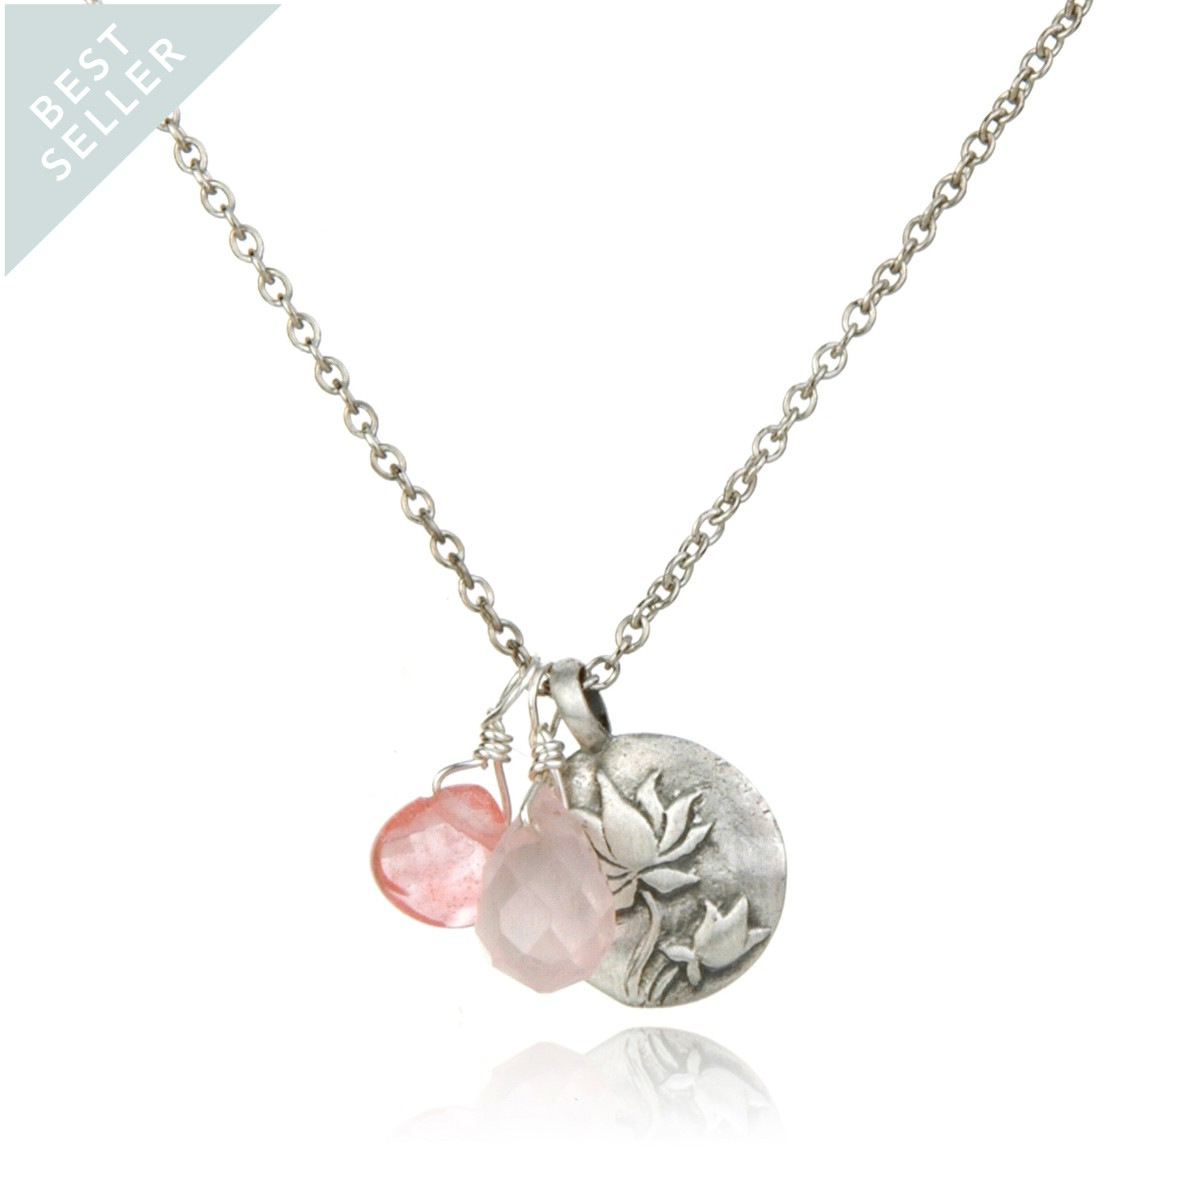 Satya Silver Rose And Cherry Quartz Lotus Necklace - Regeneration